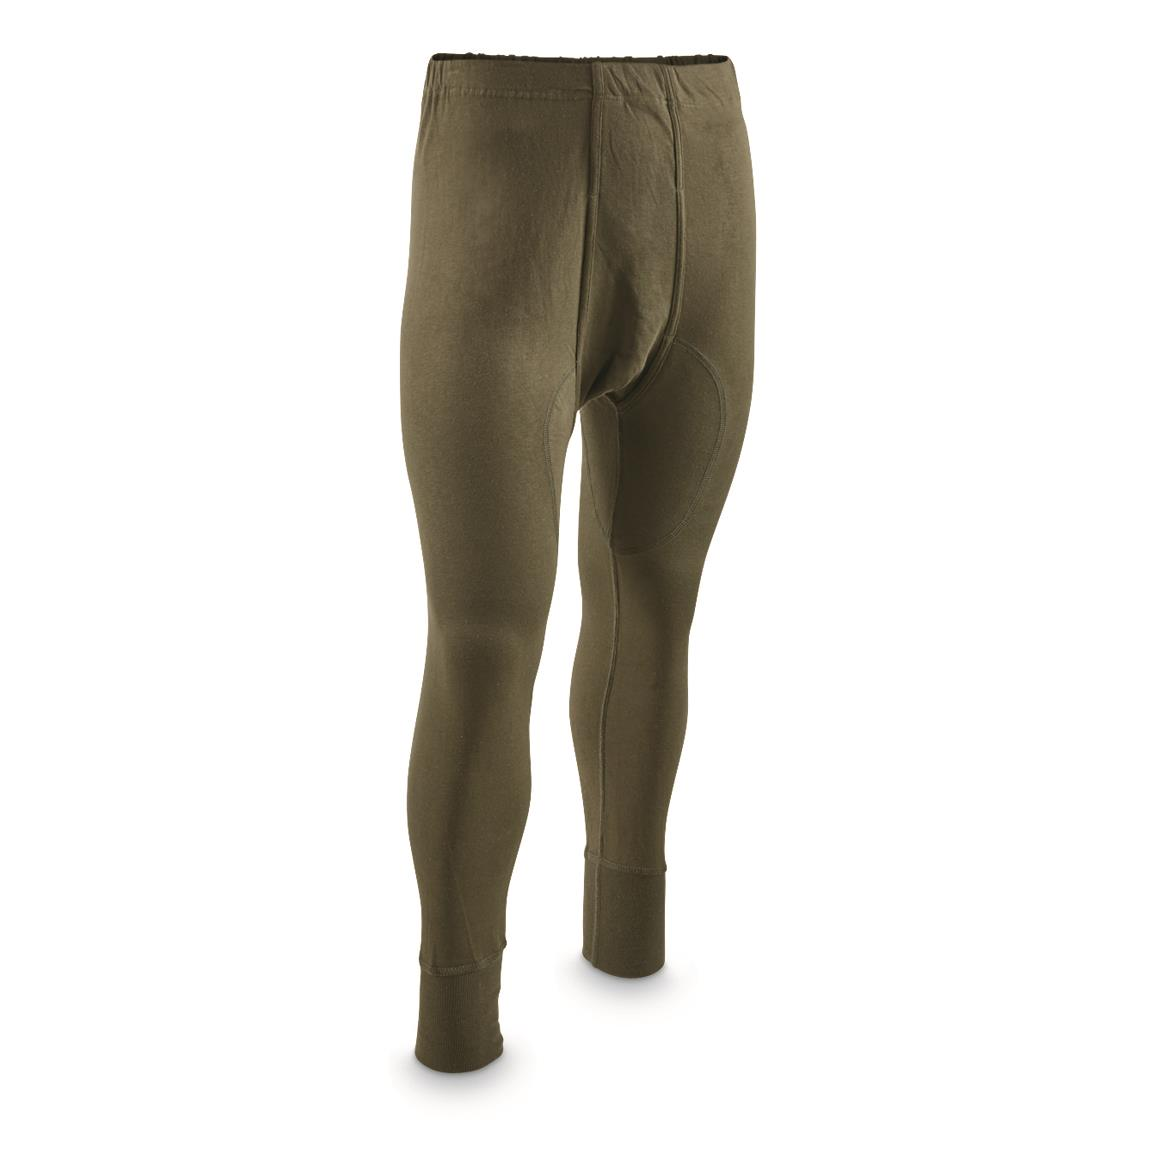 German Military Surplus Long John Bottoms, 5 pack, New